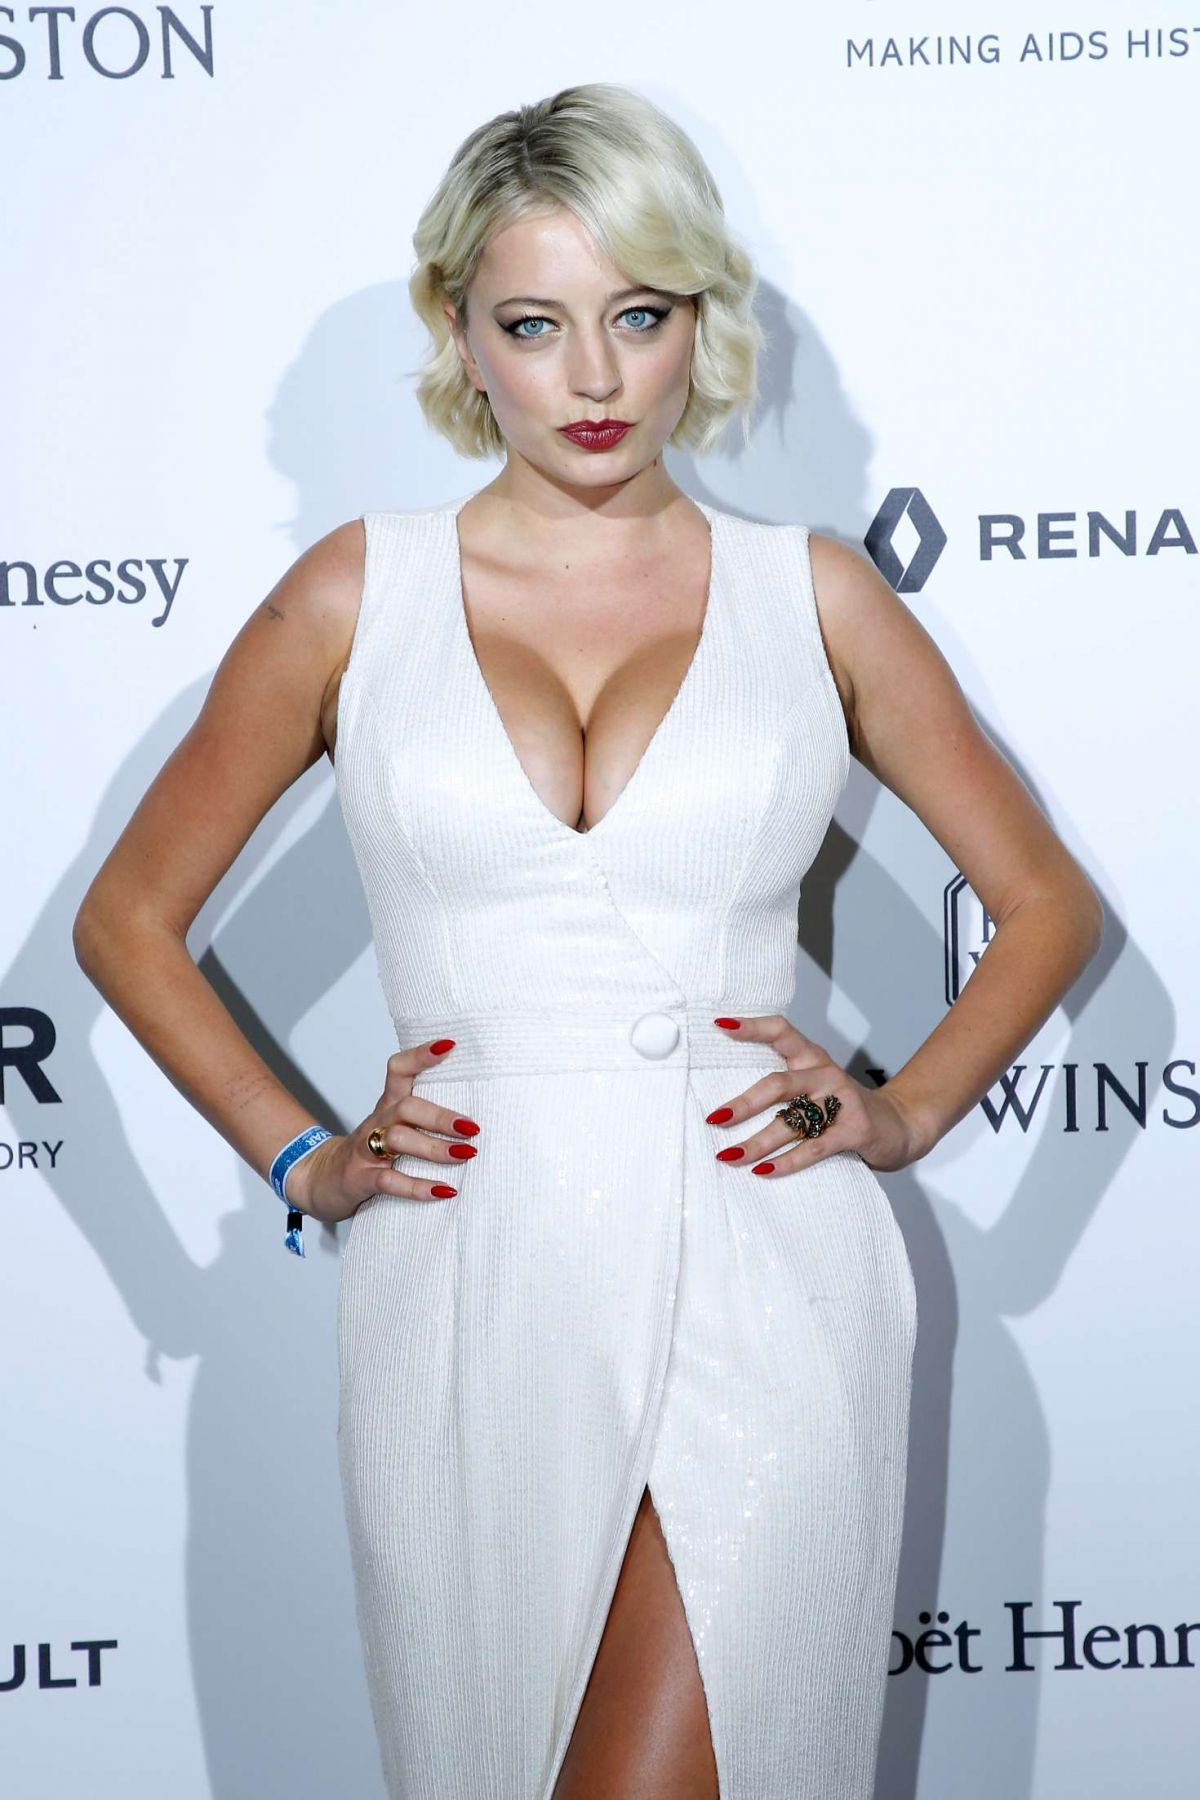 Caroline Vreeland At 2017 amfar gala haute couture fashion week in Paris   caroline-vreeland-at-2017-amfar-gala-haute-couture-fashion-week-in-paris_9